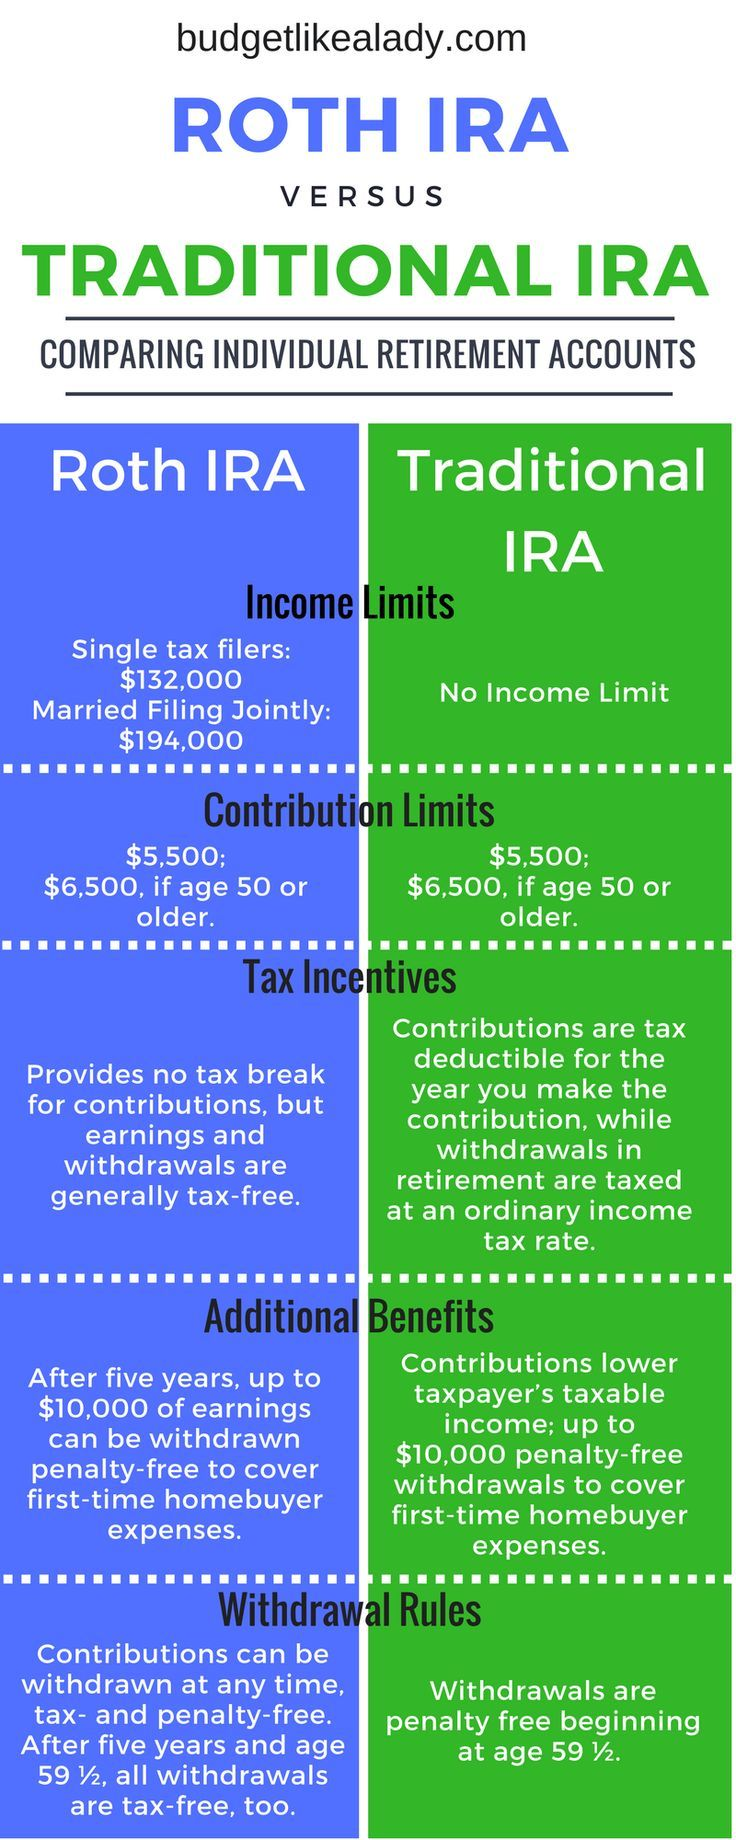 Best 25+ Roth ira ideas on Pinterest | Ira retirement ...